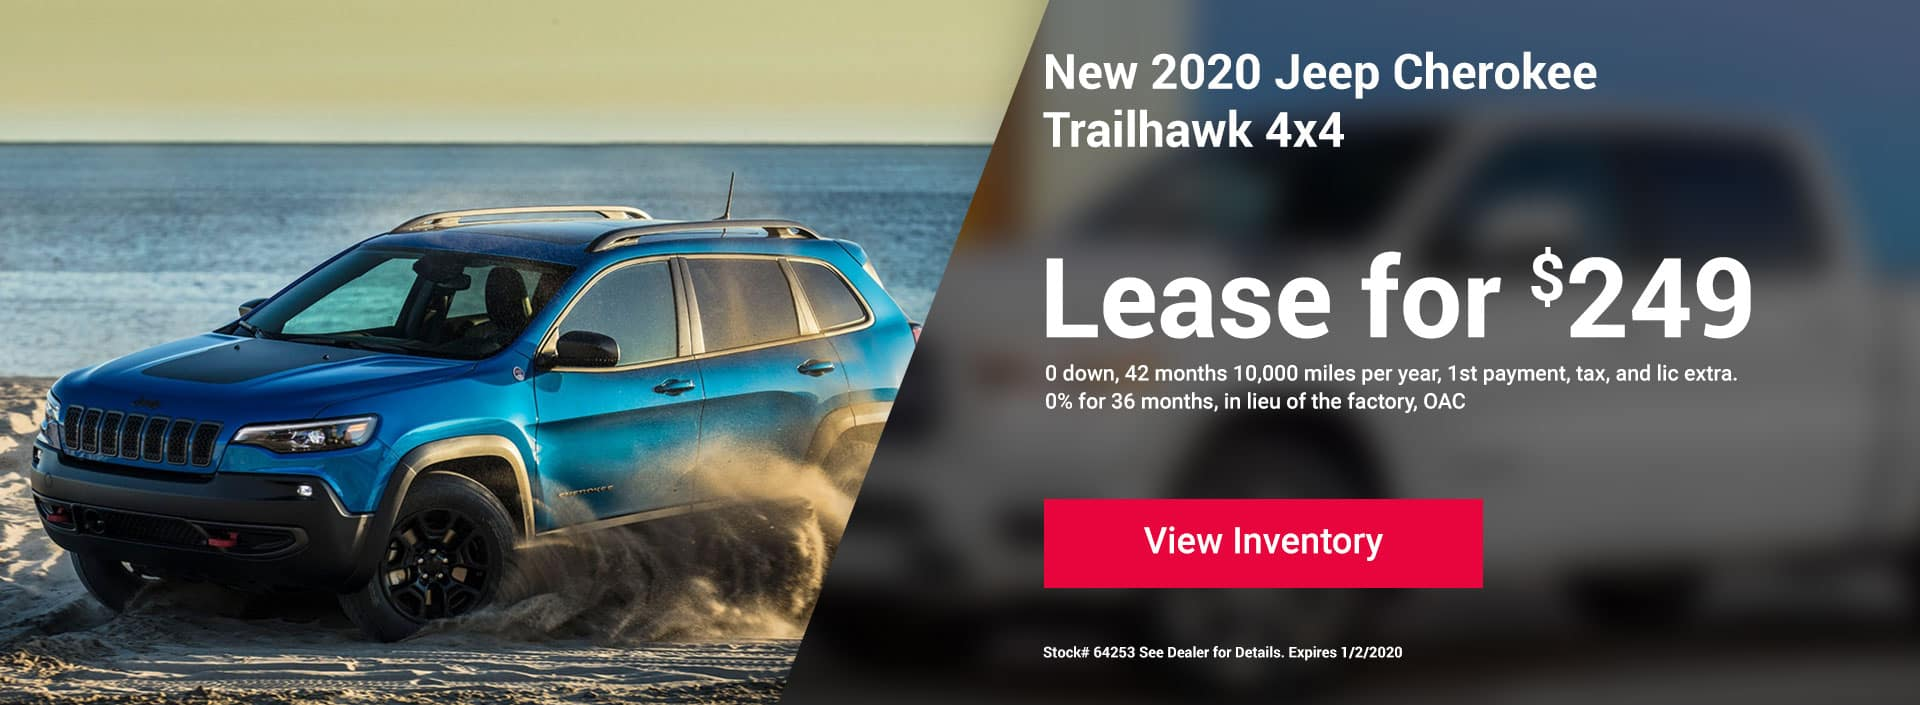 Cherokee Trailhawk Offer